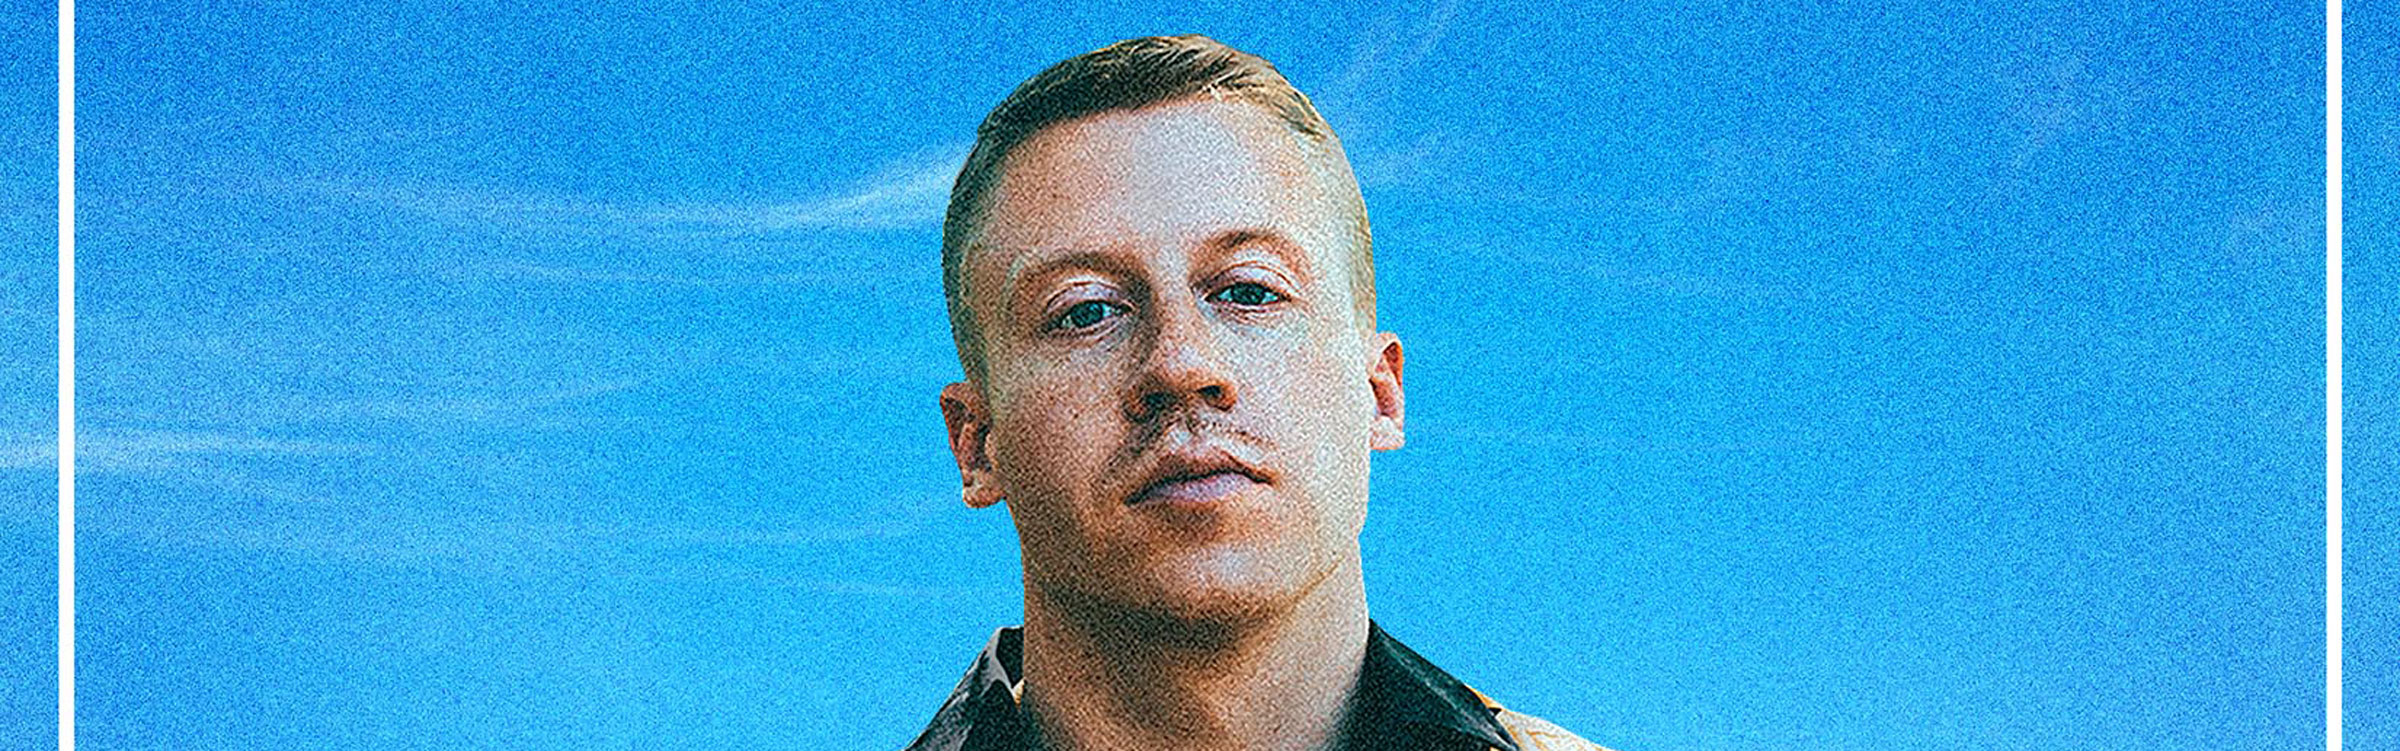 Macklemore header